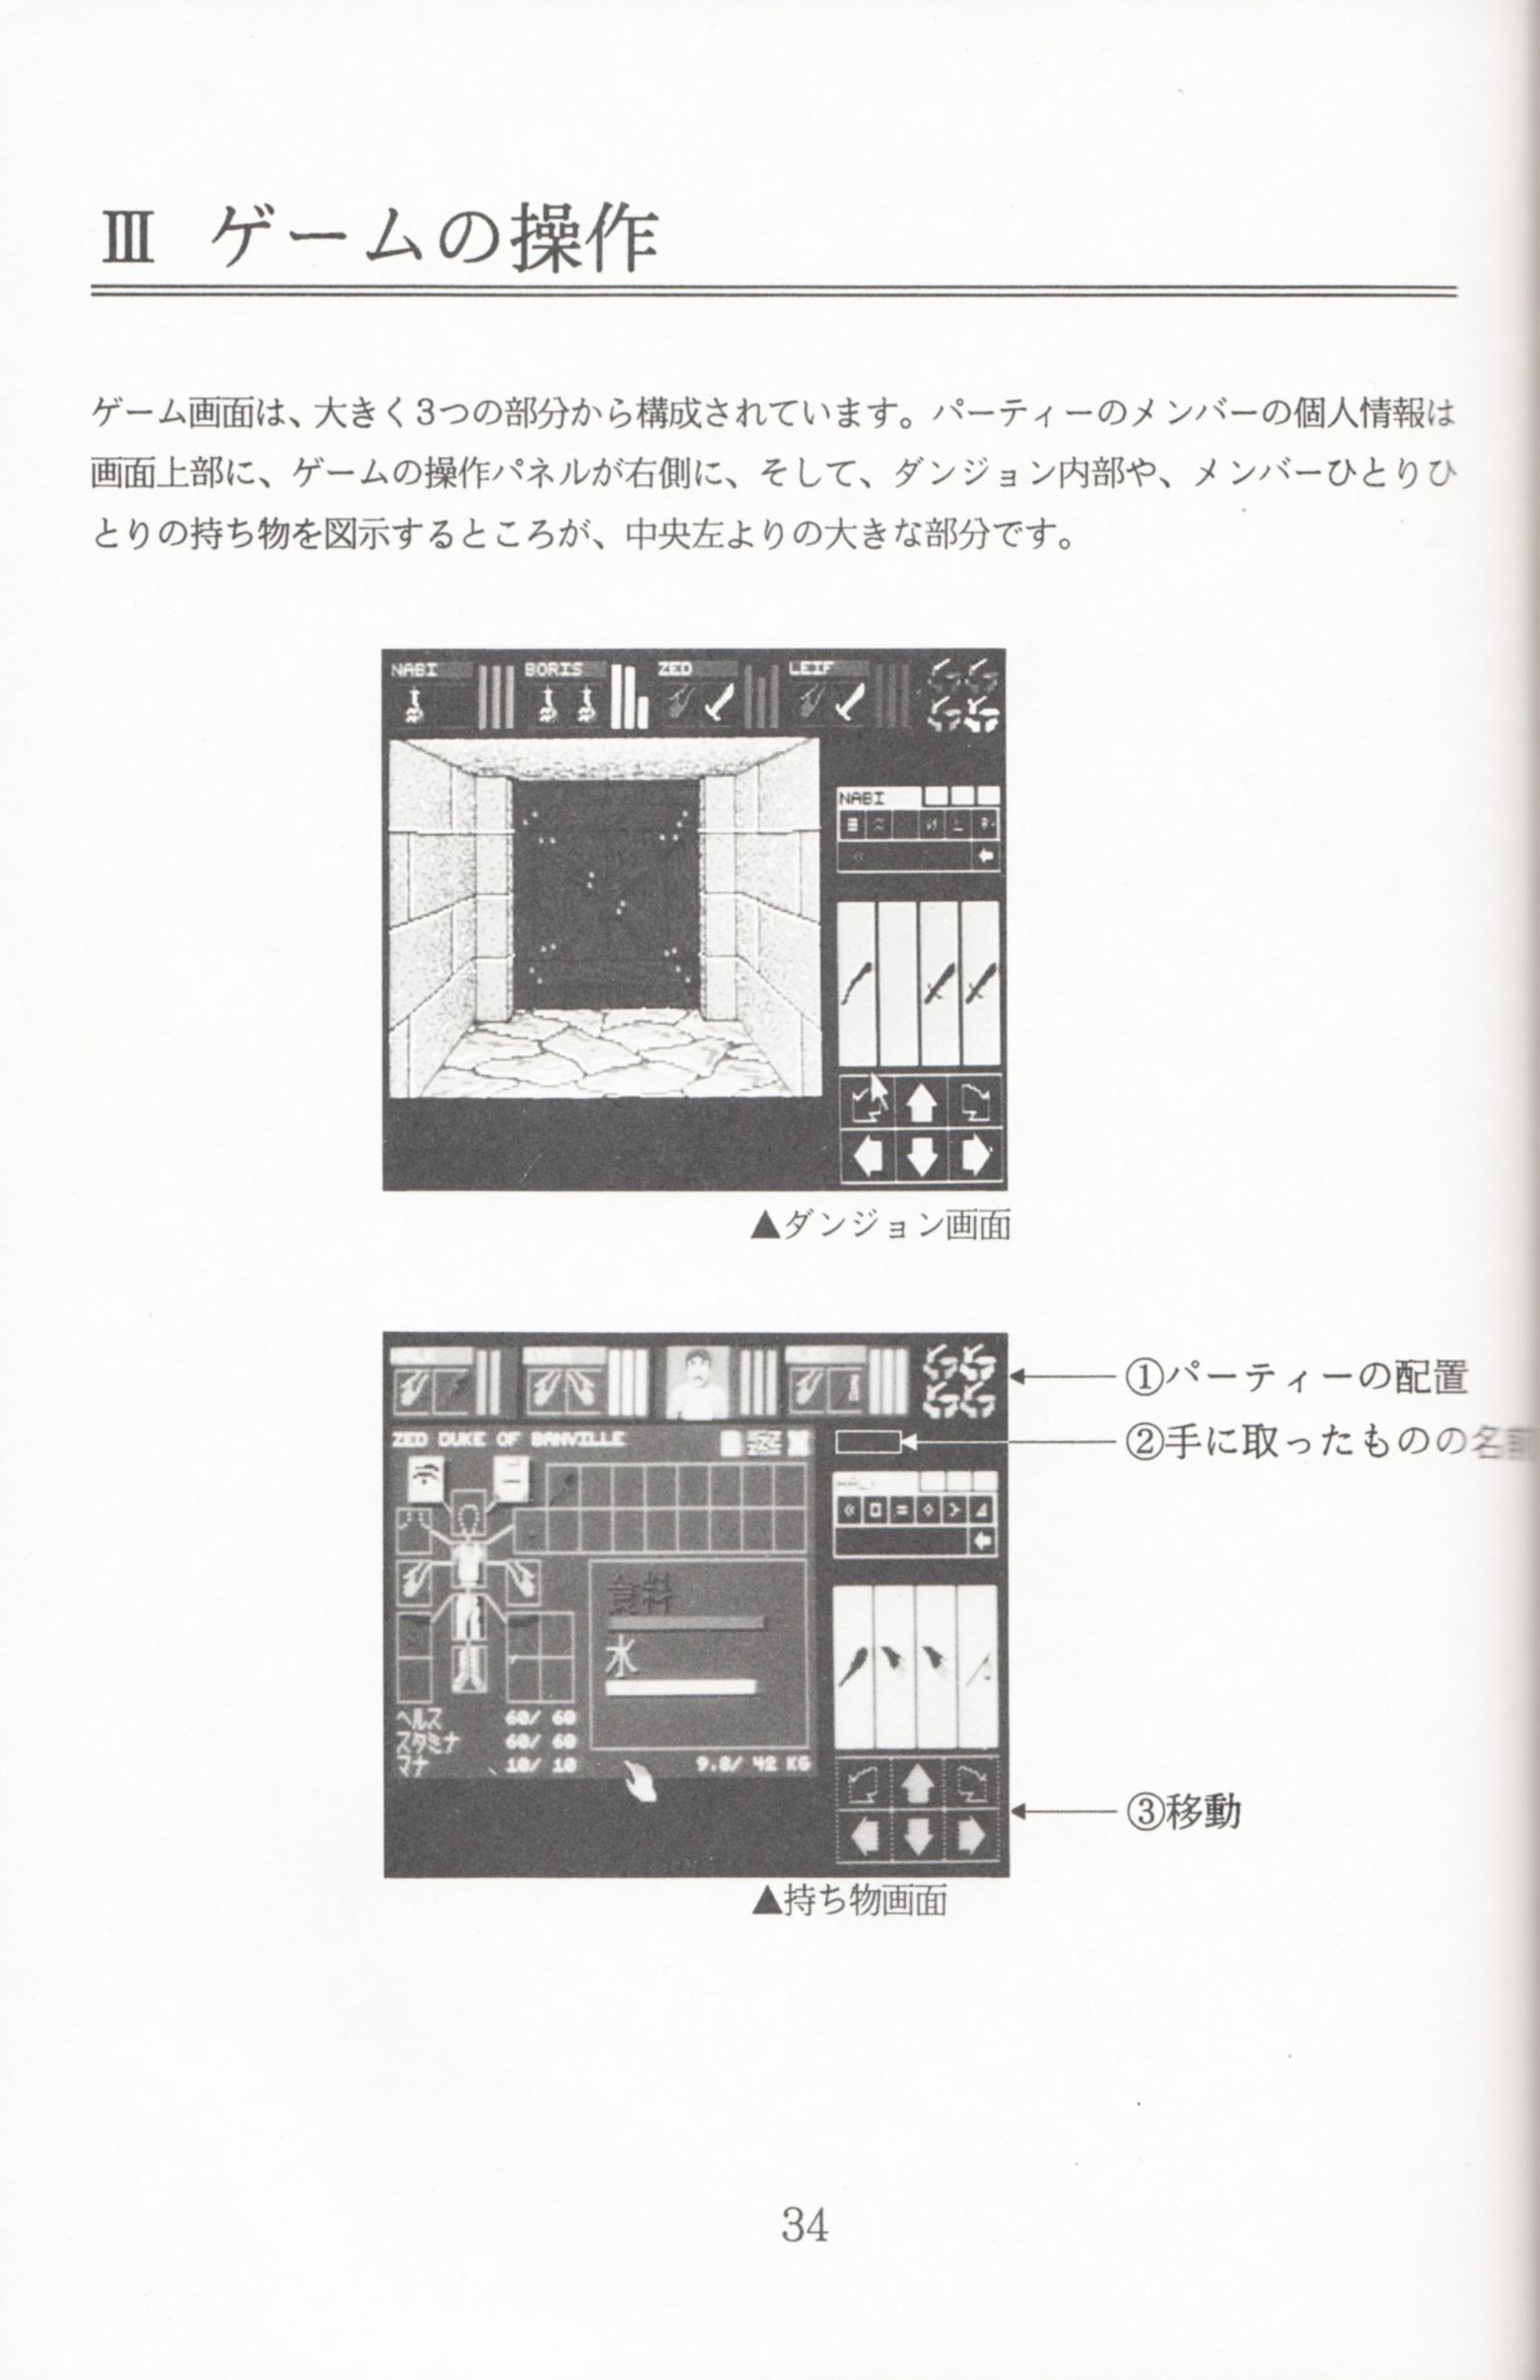 Game - Dungeon Master - JP - PC-9801 - 5.25-inch - Manual - Page 036 - Scan